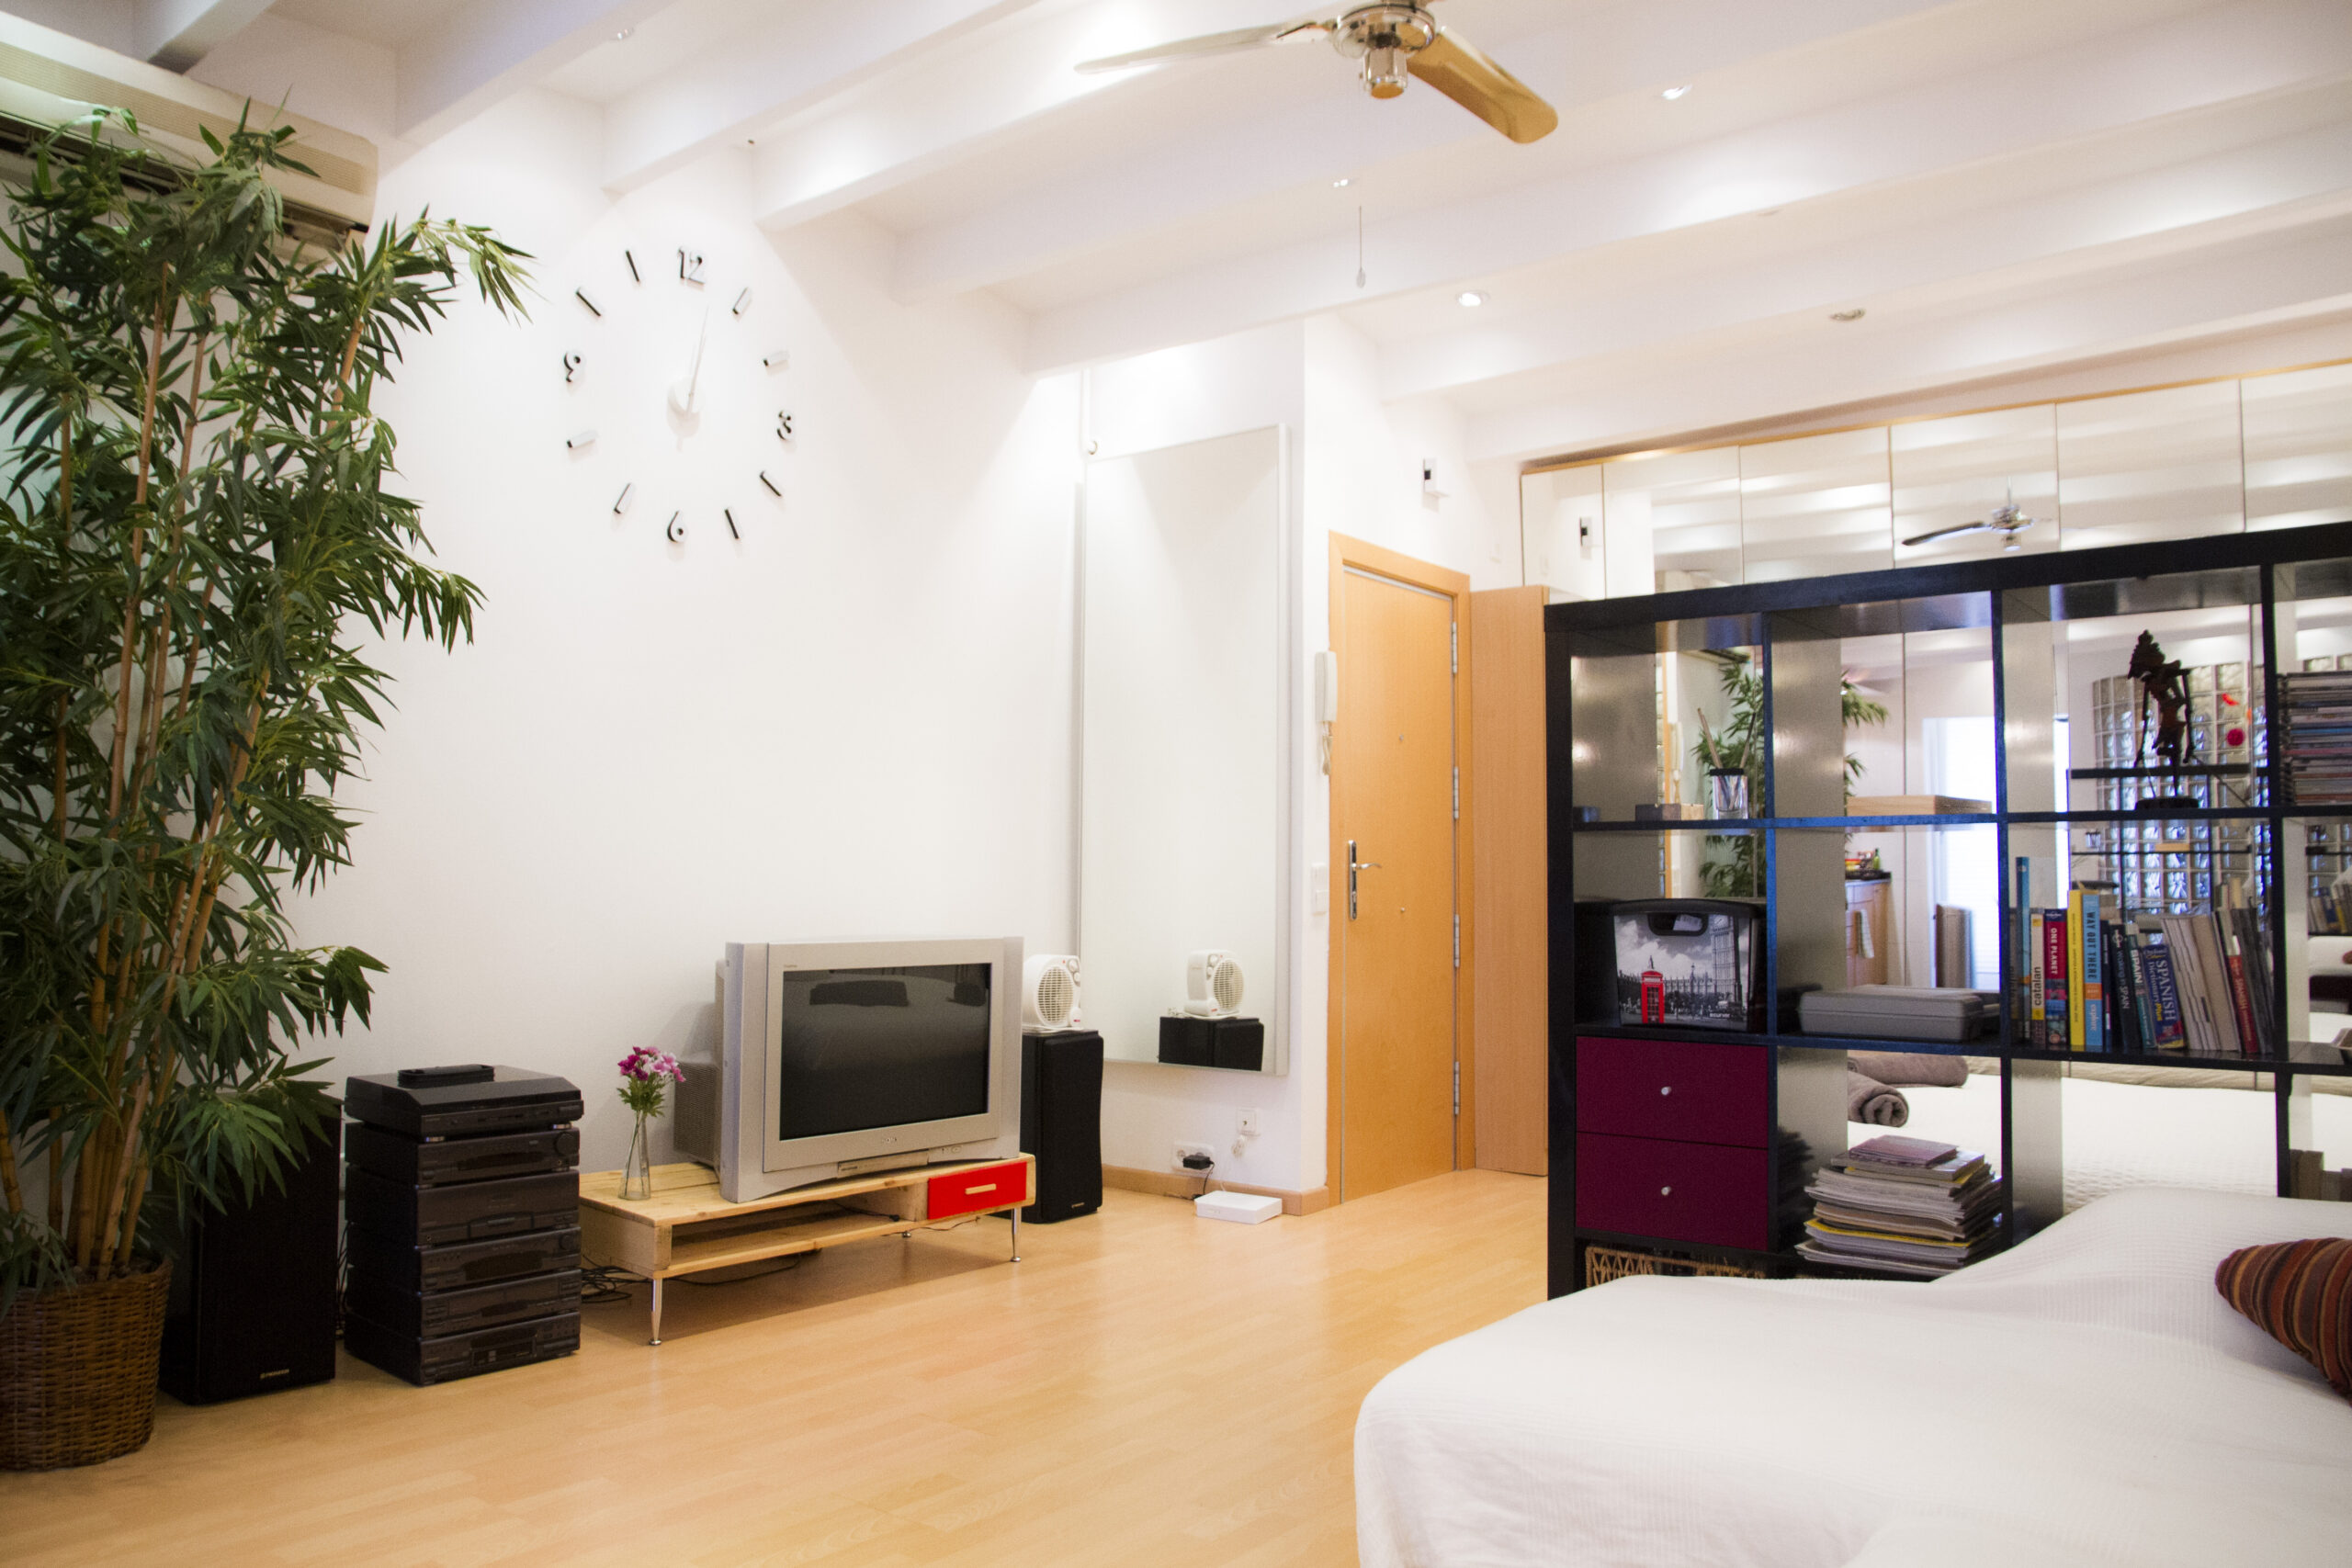 Apartment to rent in Gracia Barcelona By MyRentalHost